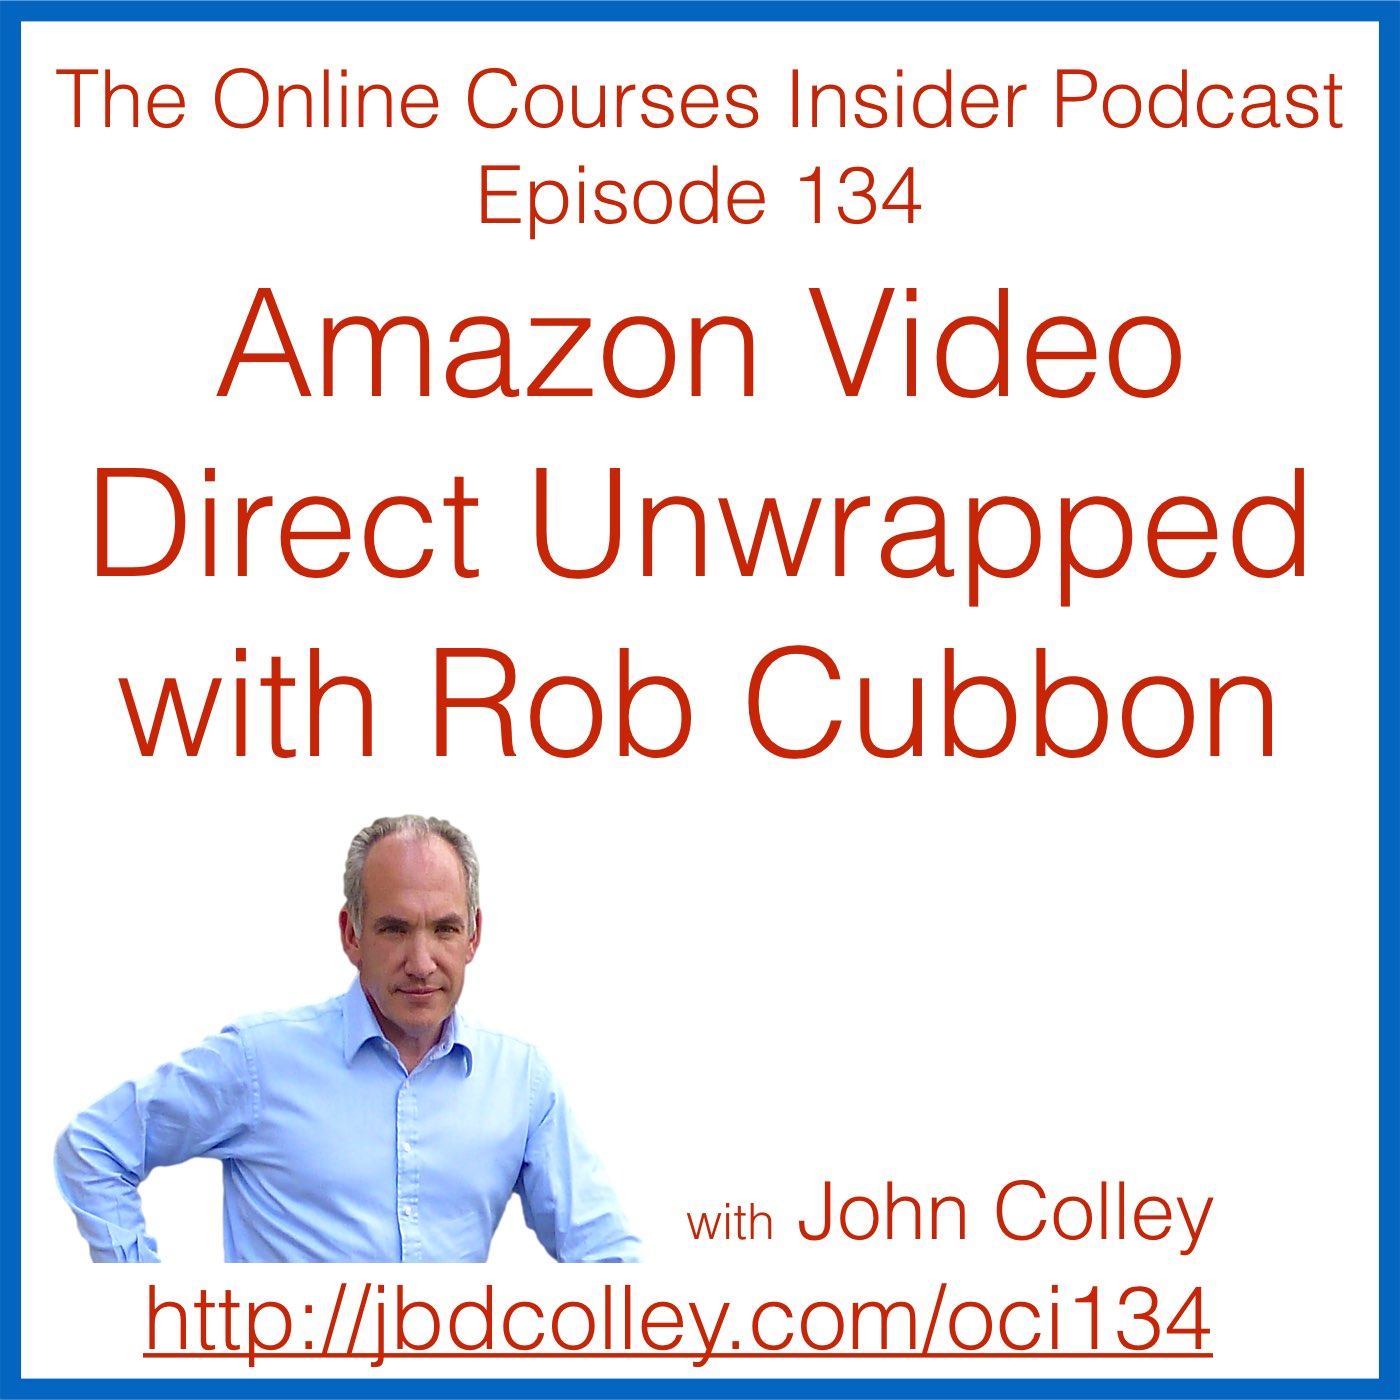 OCI134 Amazon Video Direct Unwrapped with Rob Cubbon